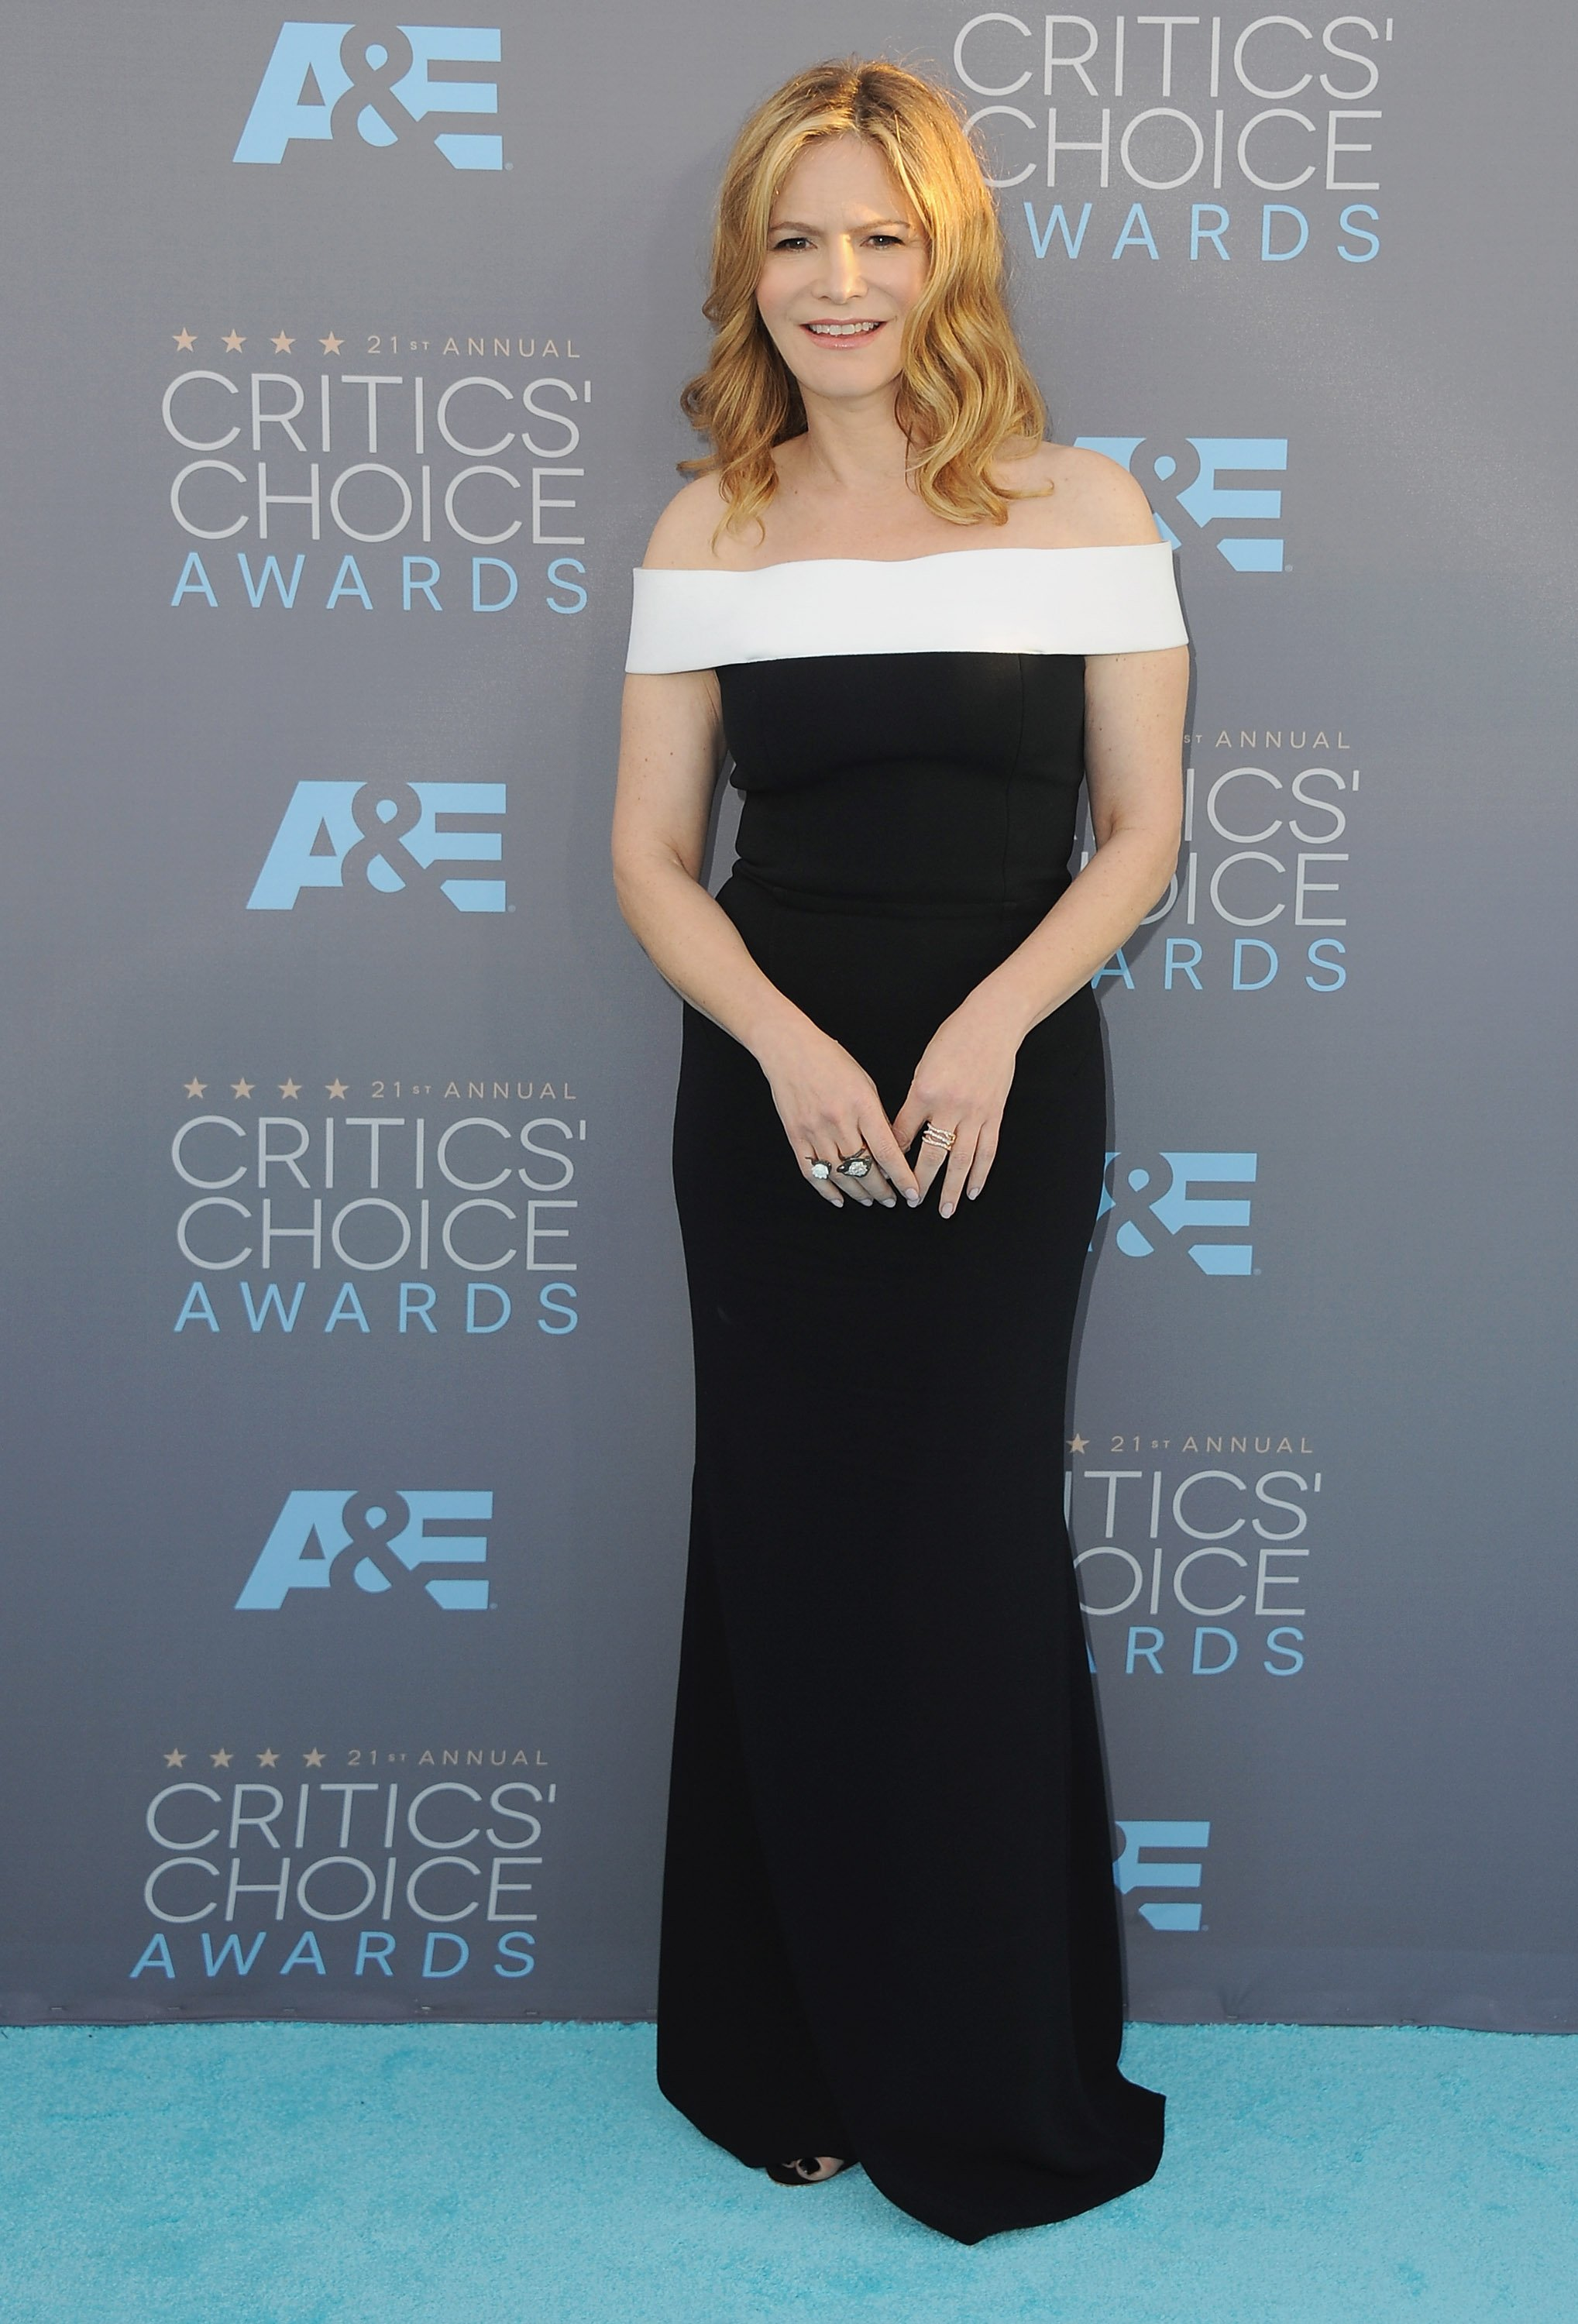 Actress Jennifer Jason Leigh arrives at The 21st Annual Critics' Choice Awards at Barker Hangar on January 17, 2016 in Santa Monica, California.   Source: Getty Images